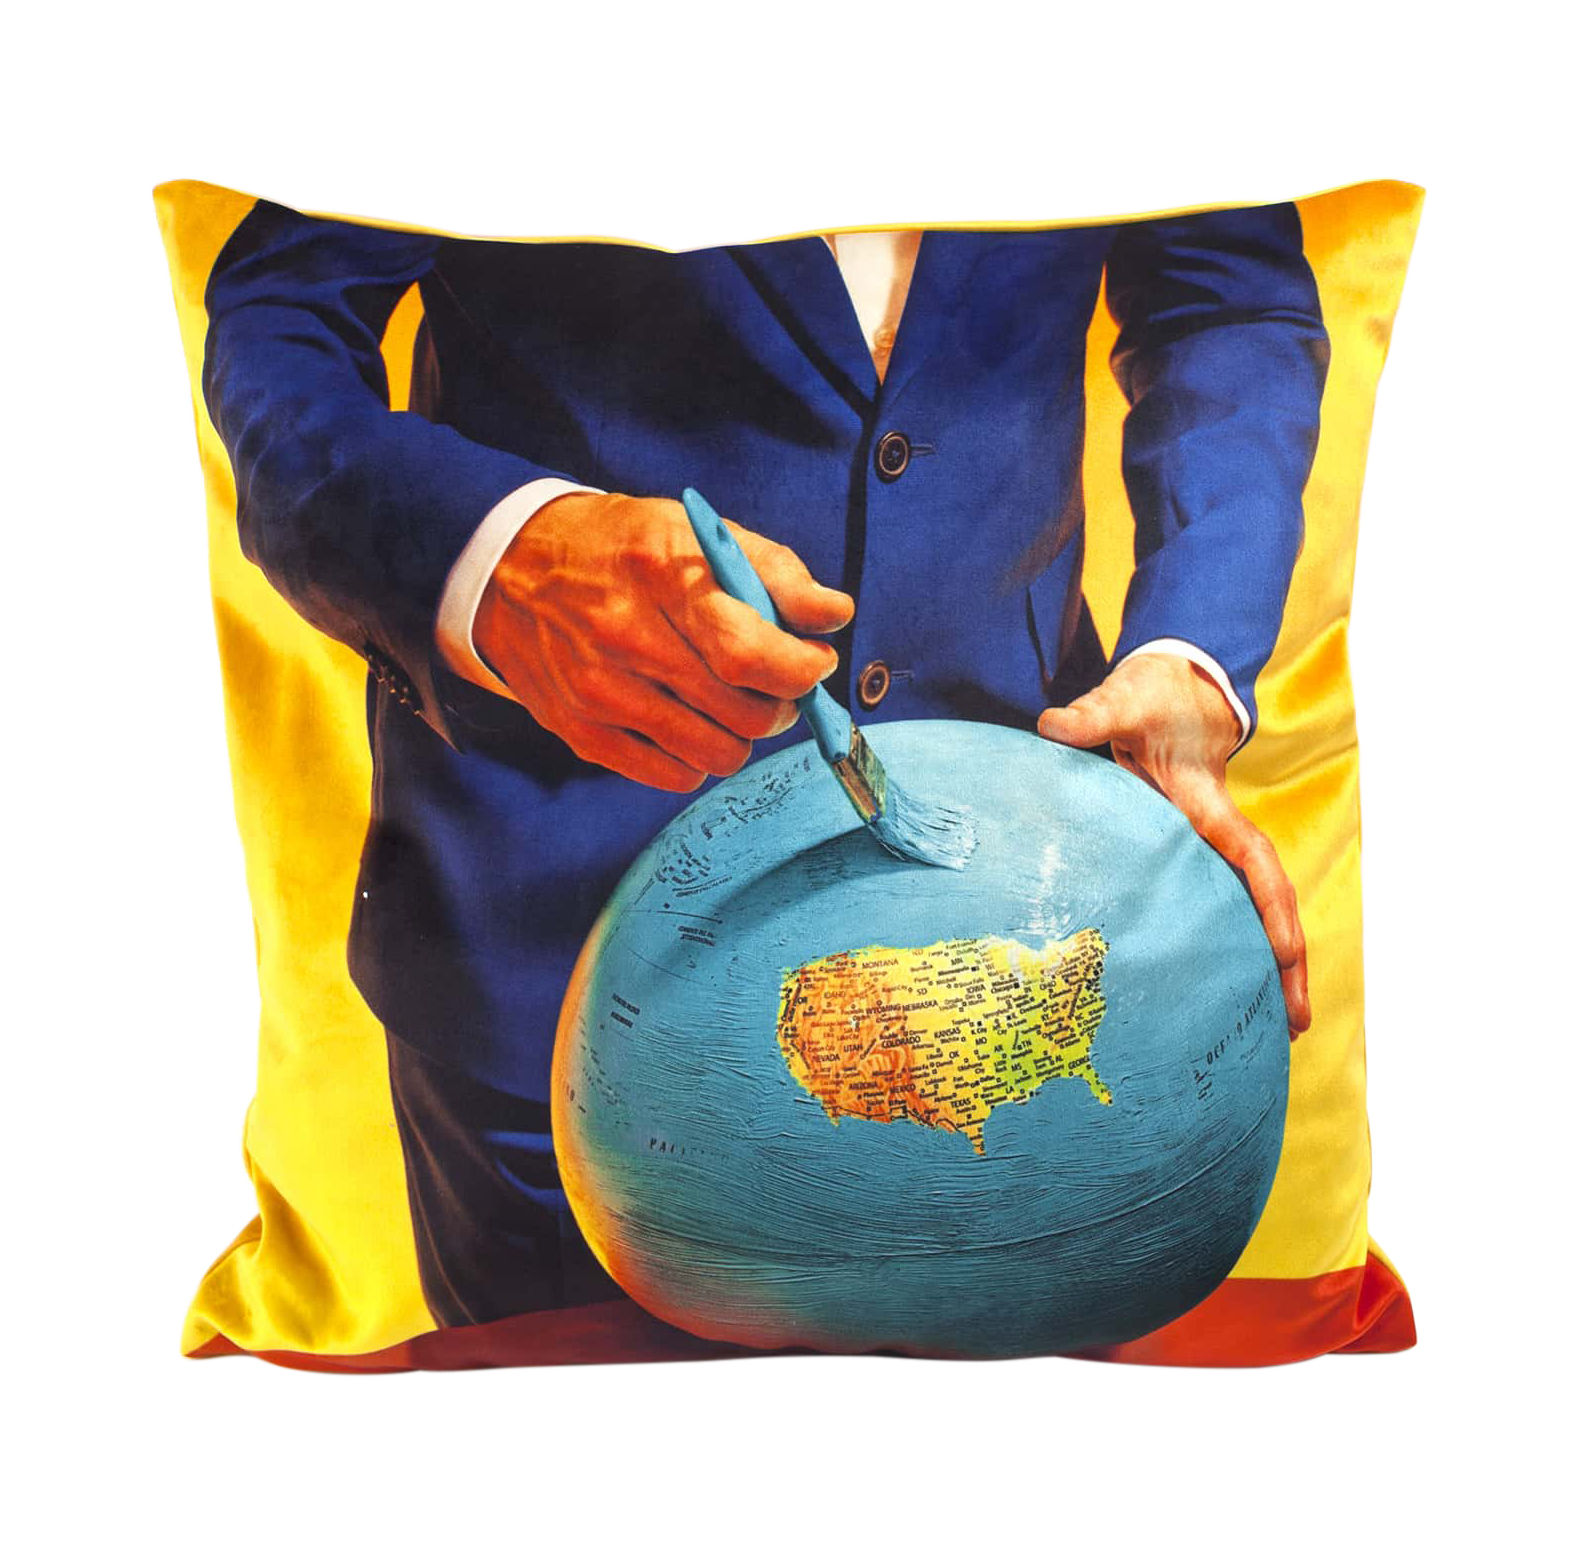 Decoration - Cushions & Poufs - Toiletpaper Cushion - / Globe - 50 x 50 cm by Seletti - Globe / Multicoloured - Feathers, Polyester fabric